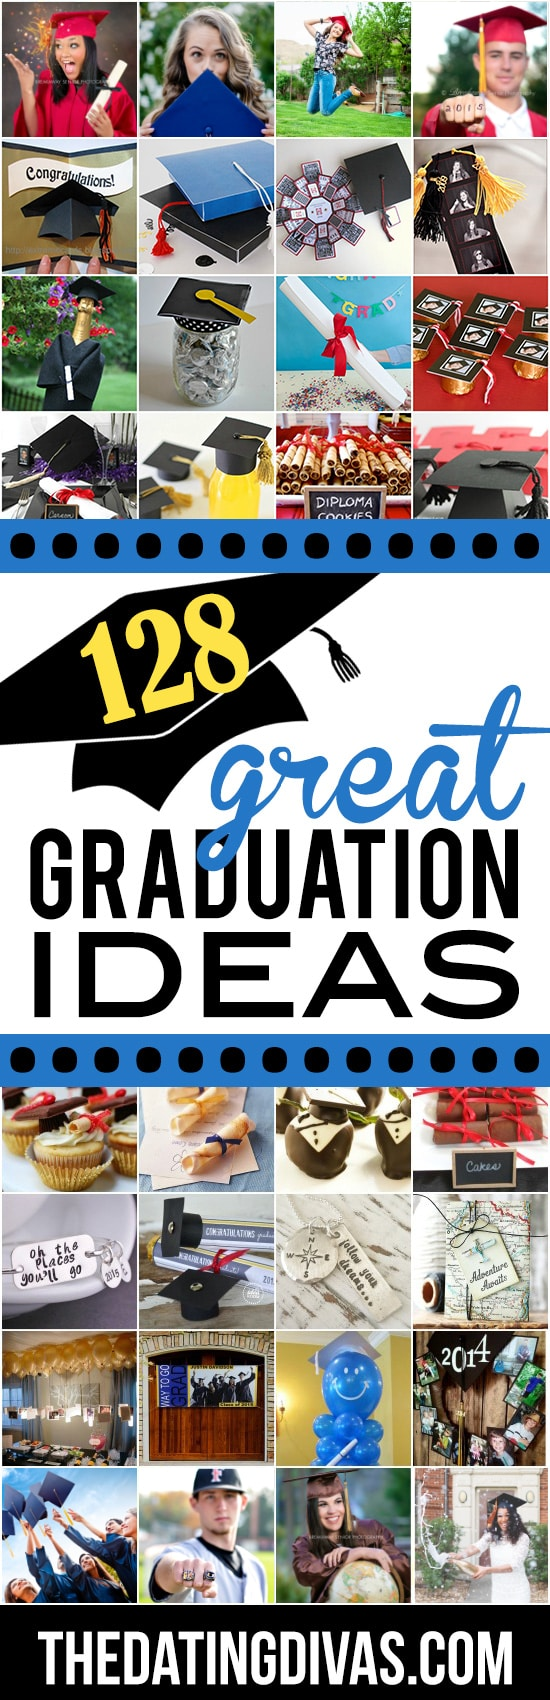 Great Graduation Ideas - Make it a special day for your hard-workin' grad!!